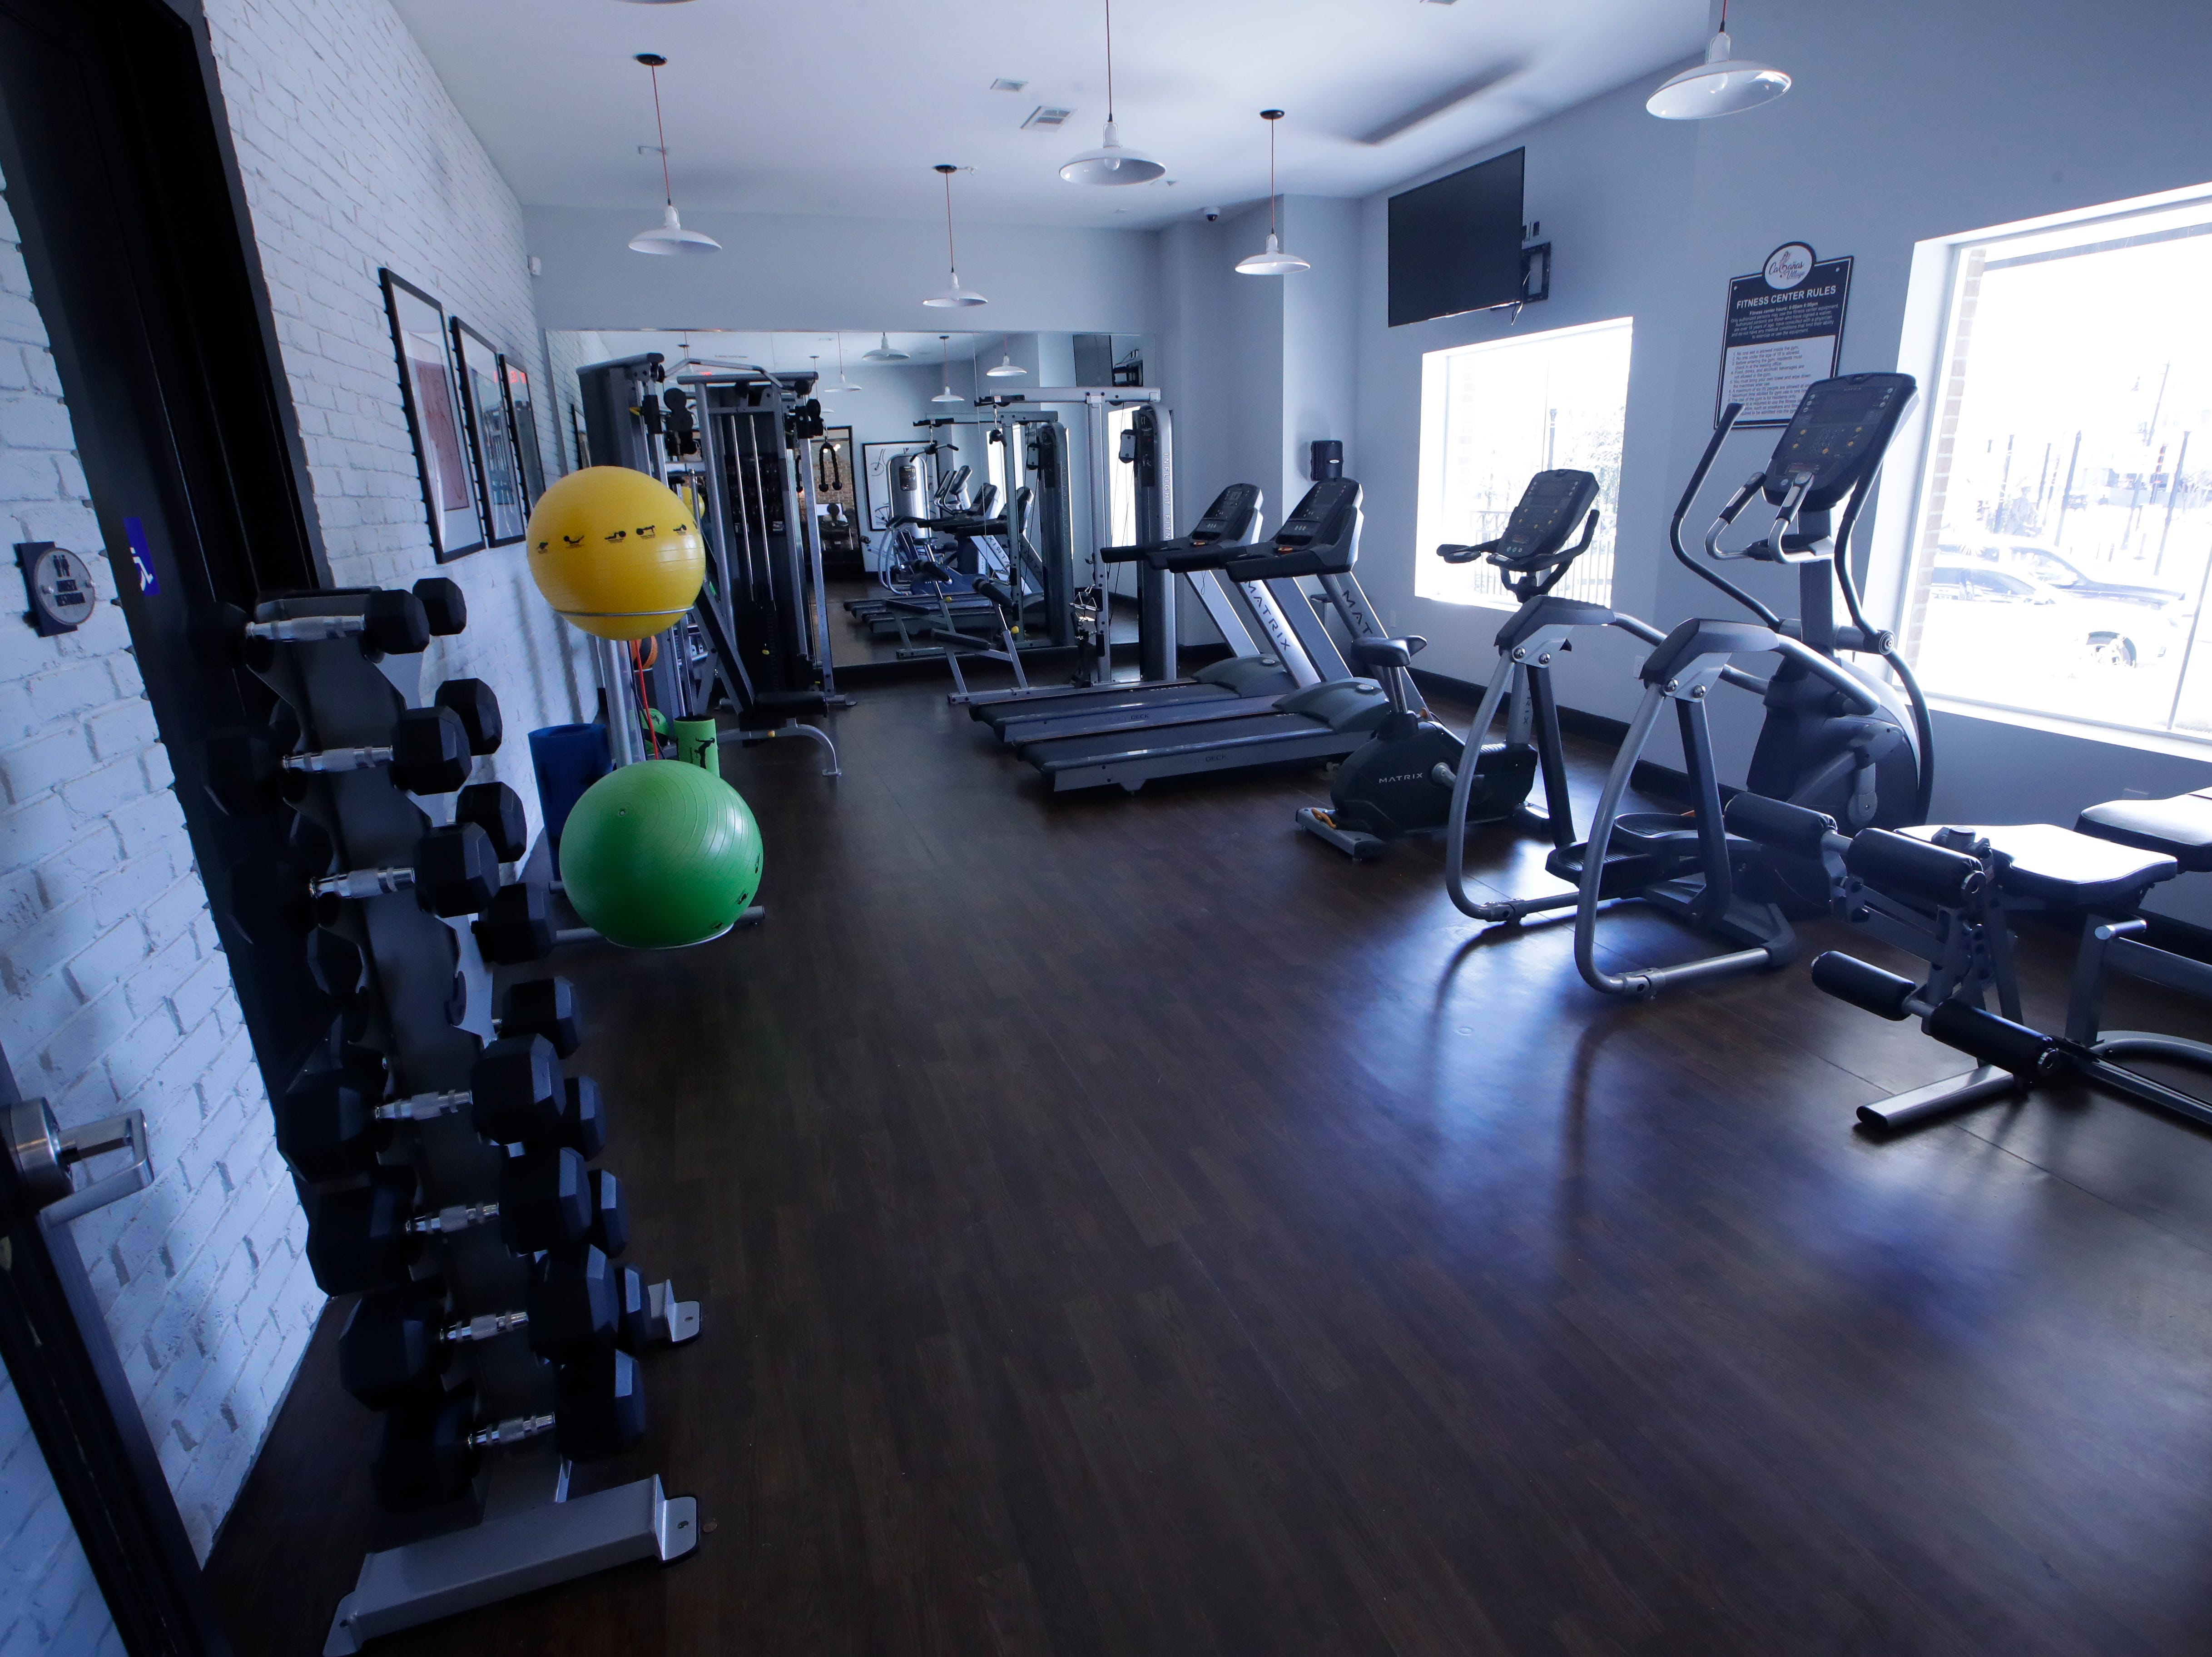 A fitness center is one of the amenities at Casañas Village Apartments at Frenchtown Square.